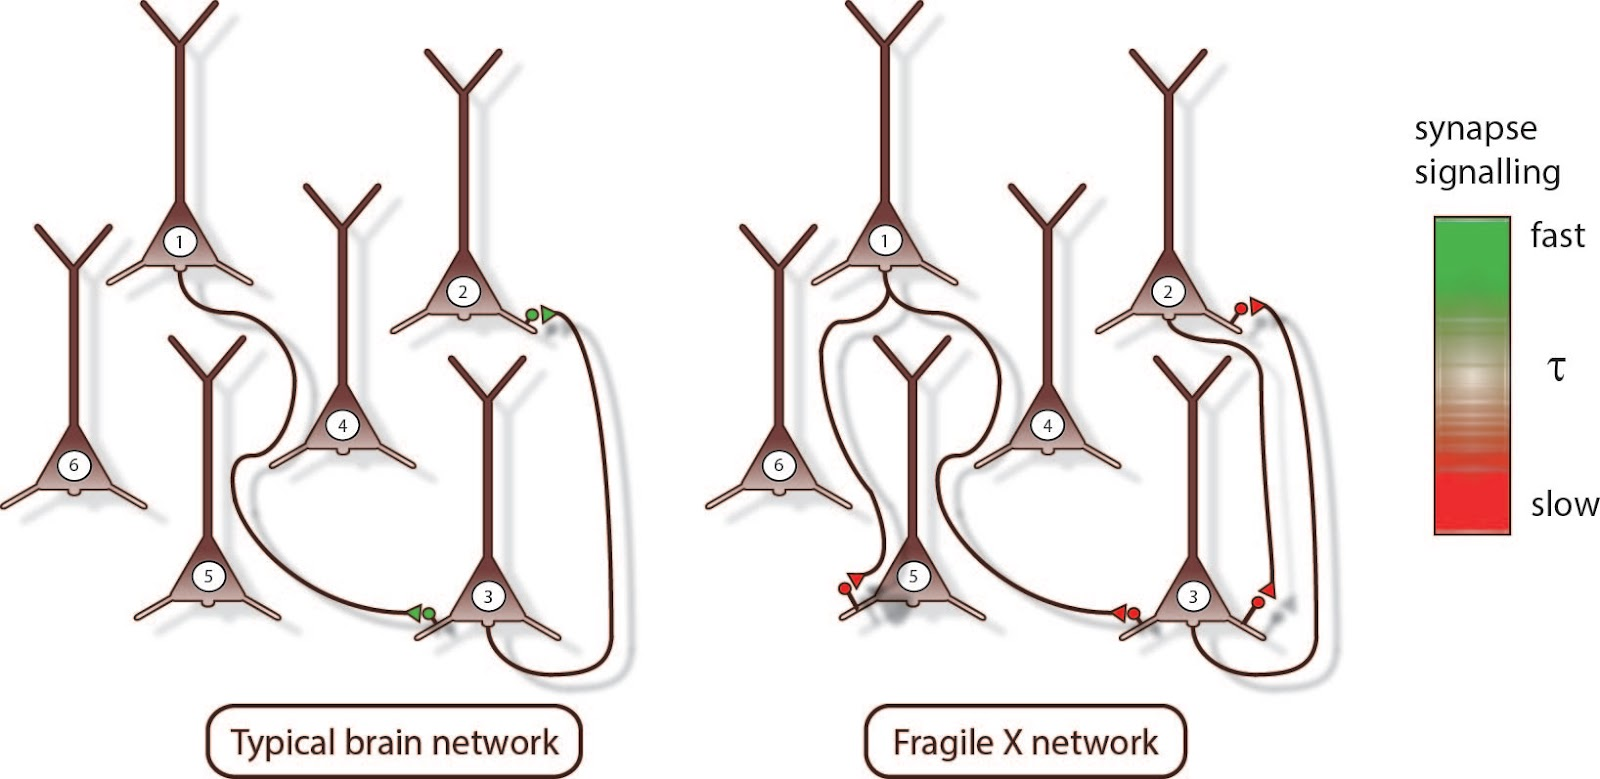 medium resolution of diagram of synapses in typical and fragile x brain networks